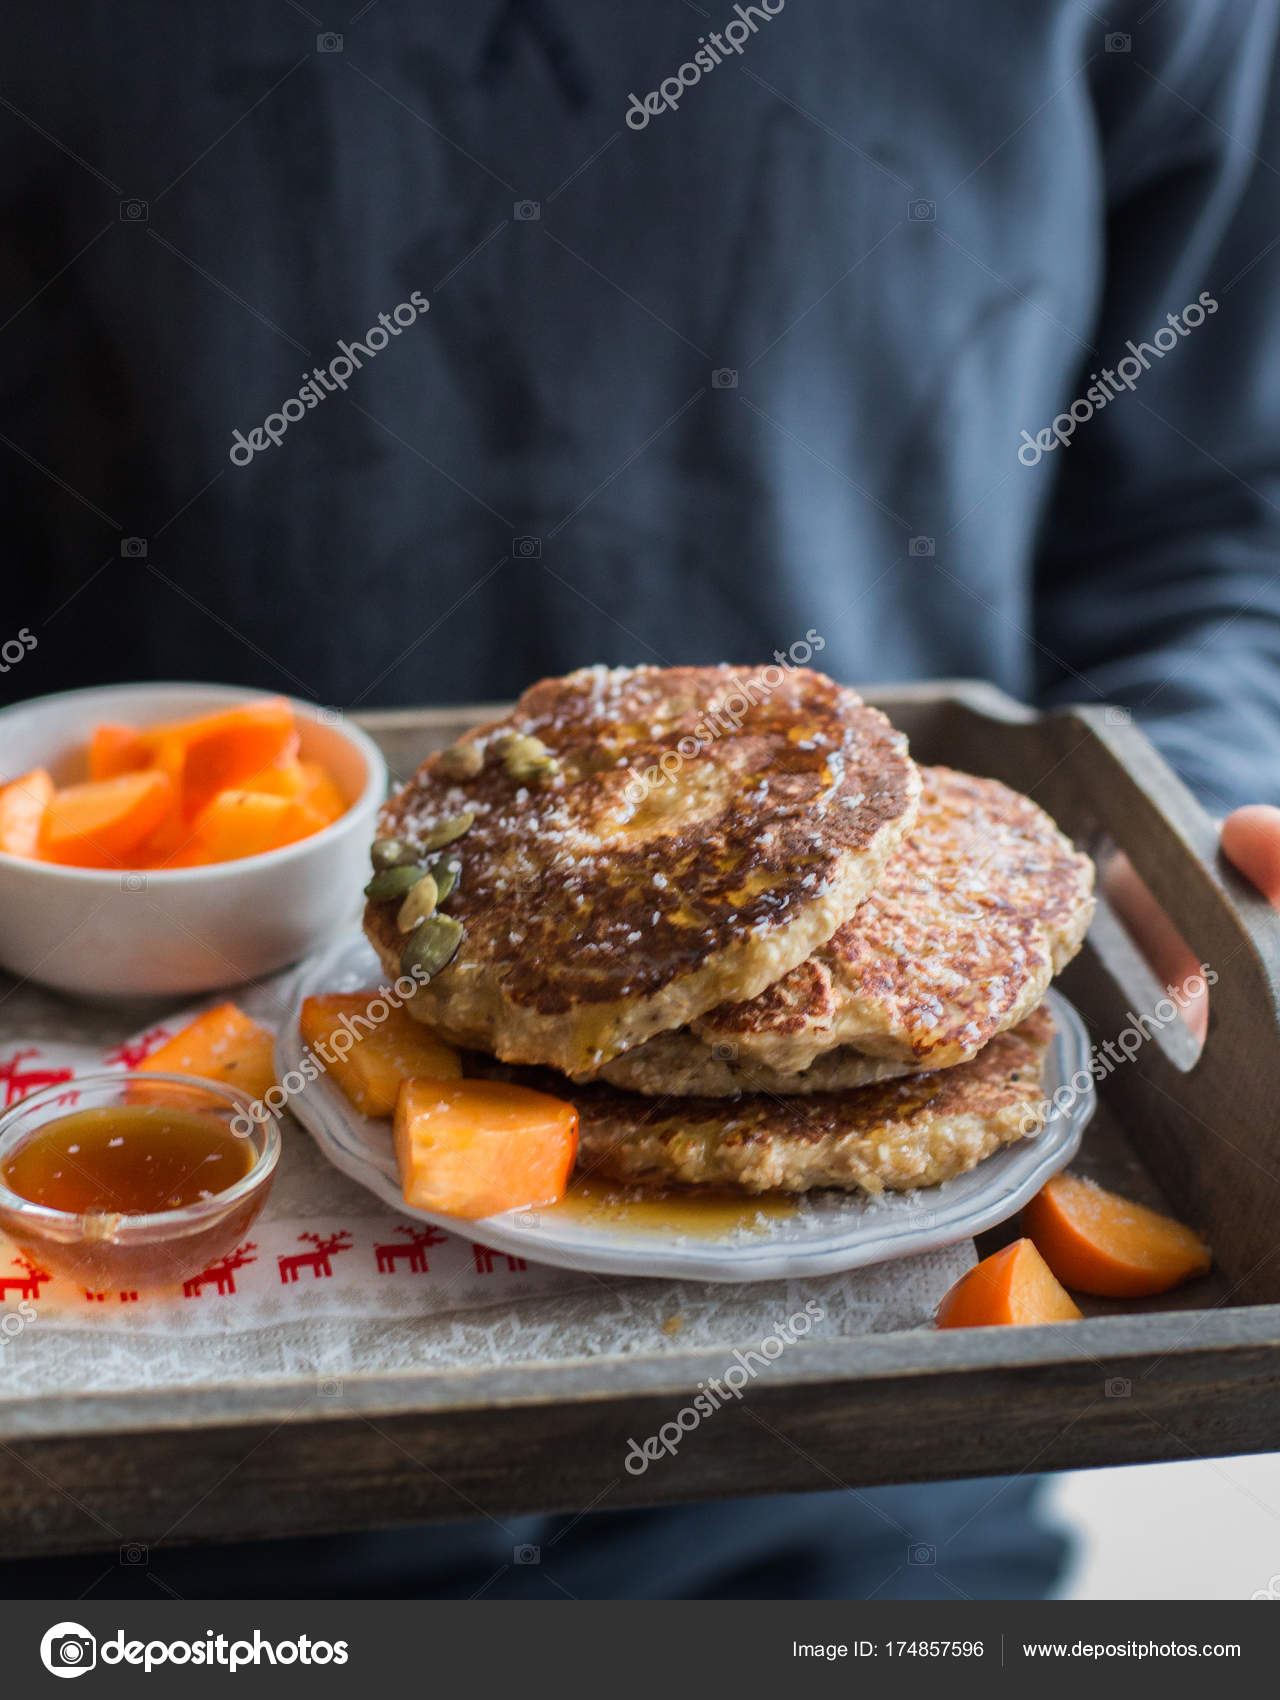 Lovely Protein Pancakes Tasty Useful Pancake Oatmeal Cottage Cheese Honey Pumpkin  U2014 Stock Photo